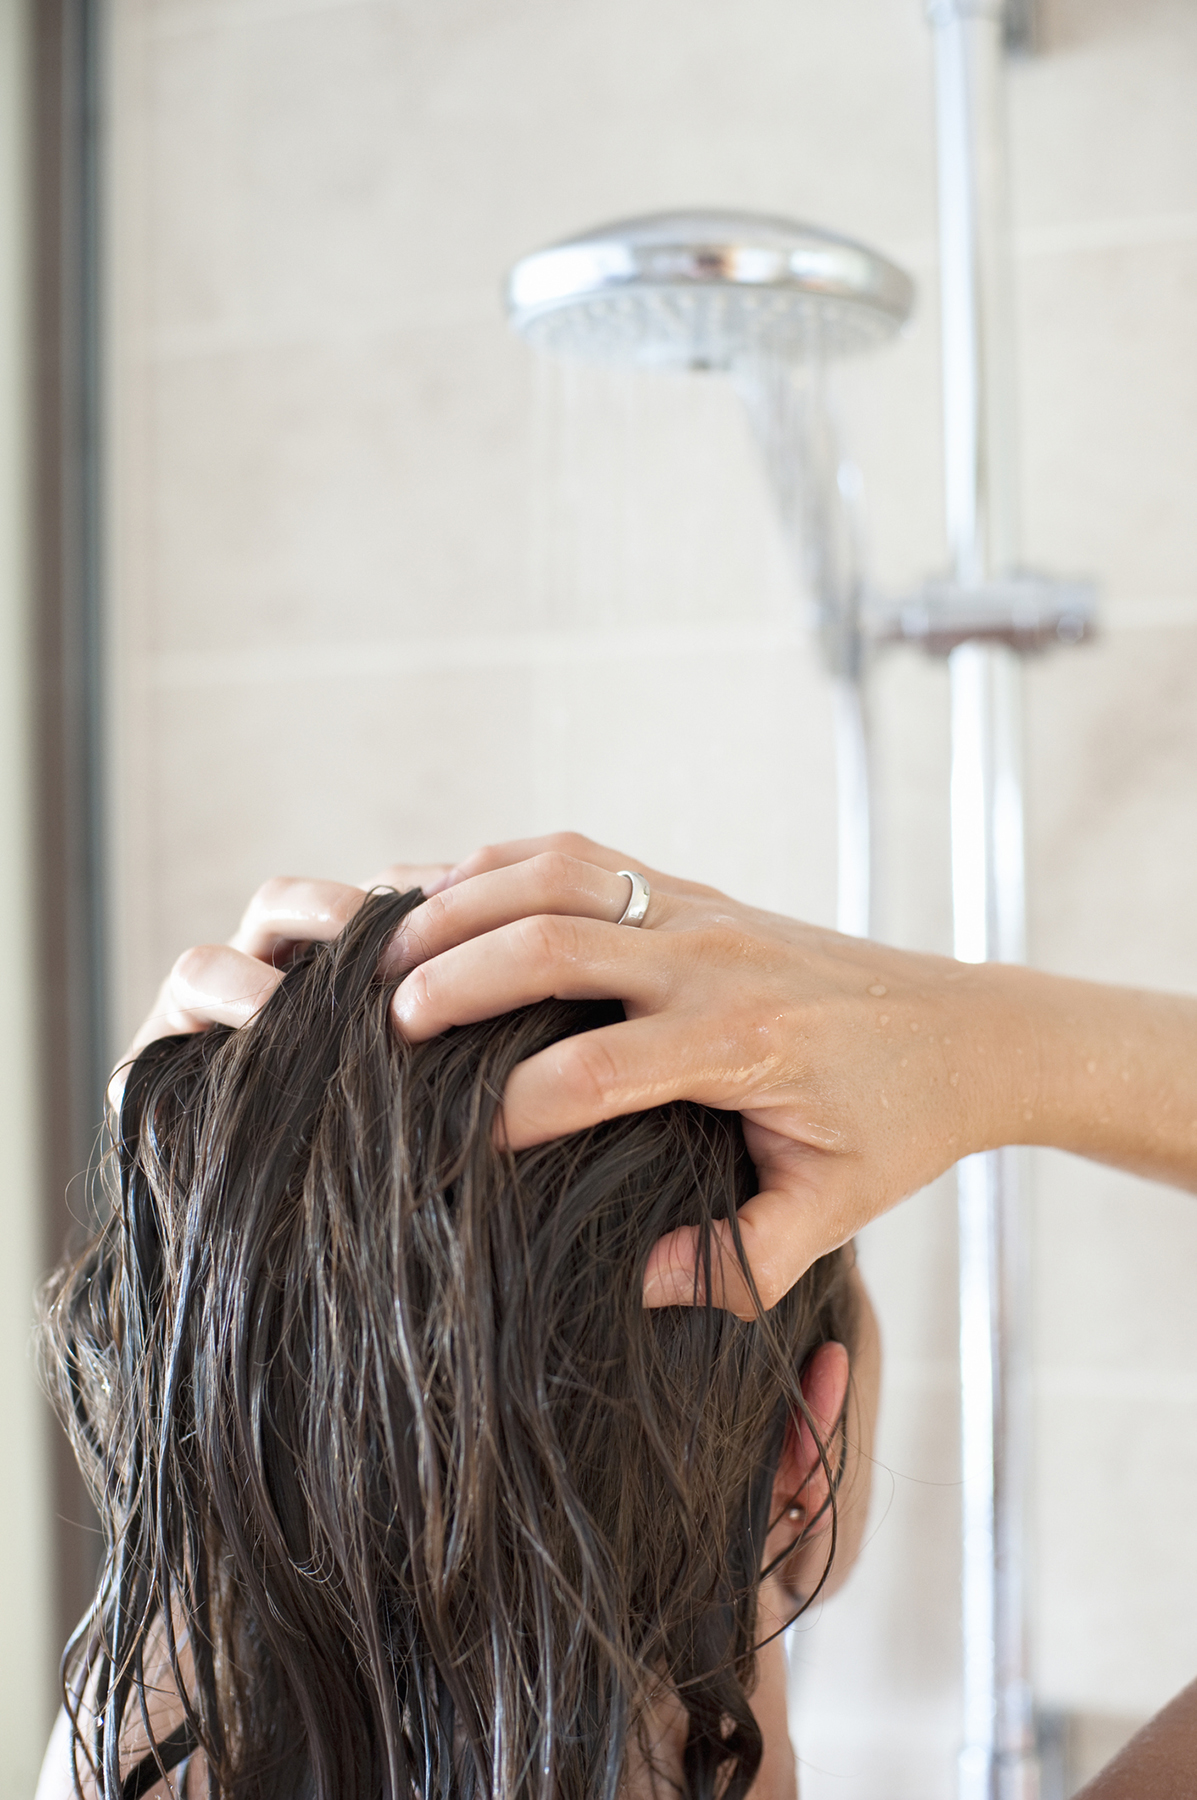 Woman Rinsing Hair in Shower